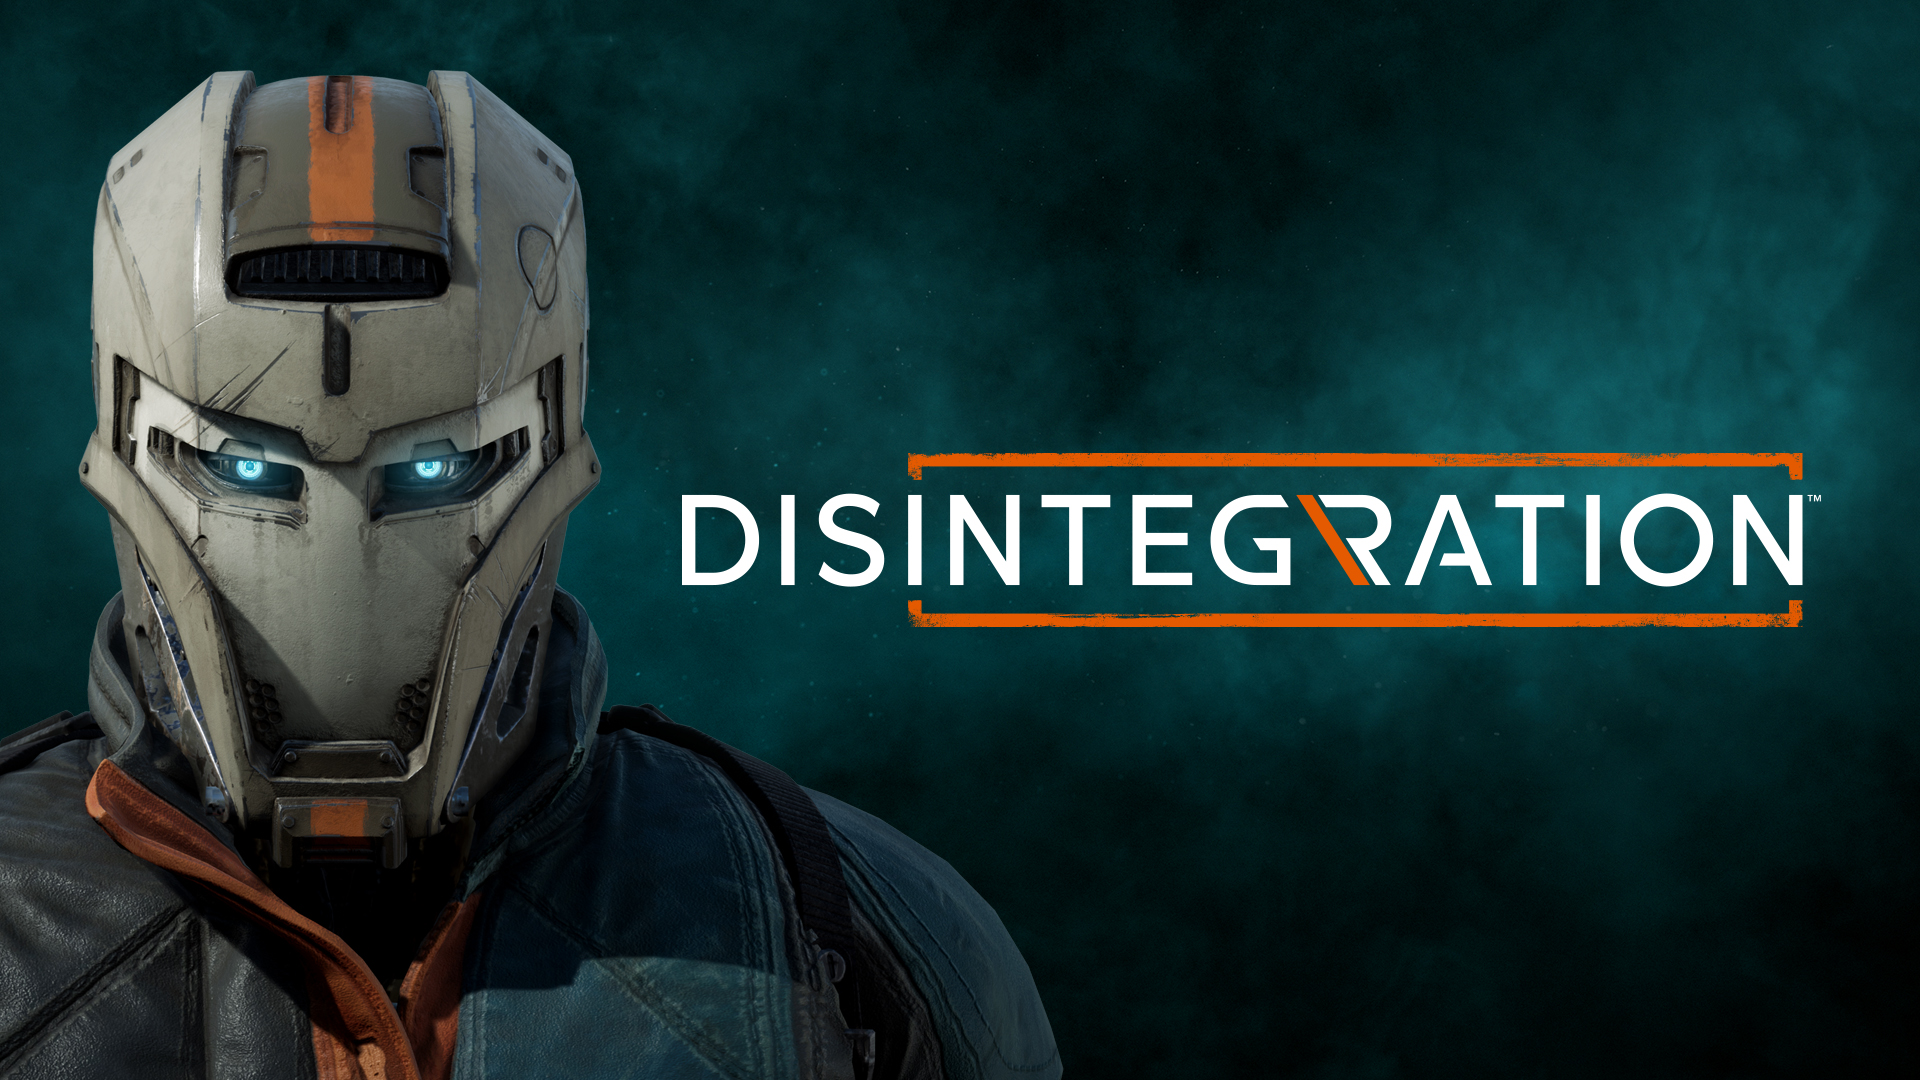 https://media.kg-portal.ru/games/d/disintegration/posters/disintegration_1.jpg